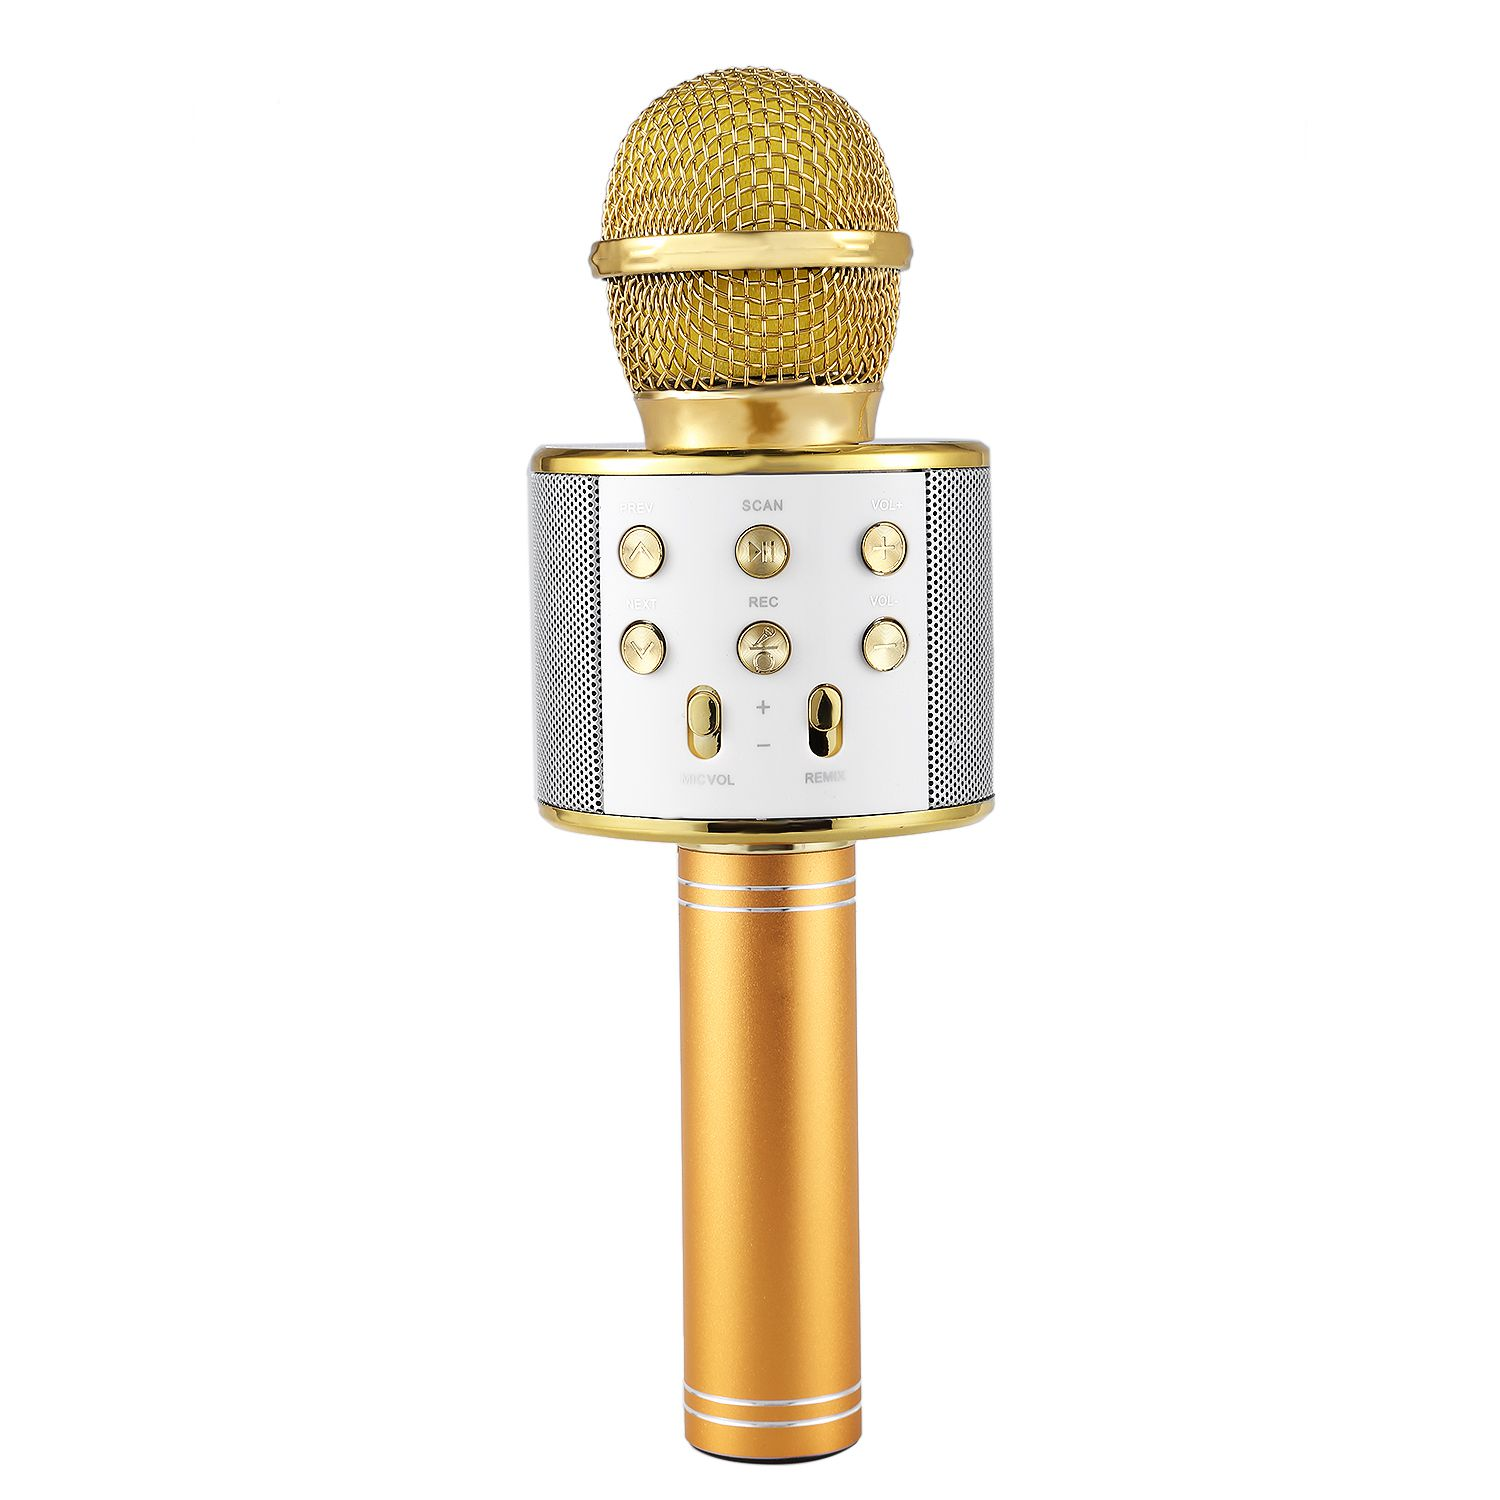 Professional Bluetooth Wireless Microphone Karaoke Microphone Speaker Handheld Music Player MIC Singing Recorder KTV Microphone